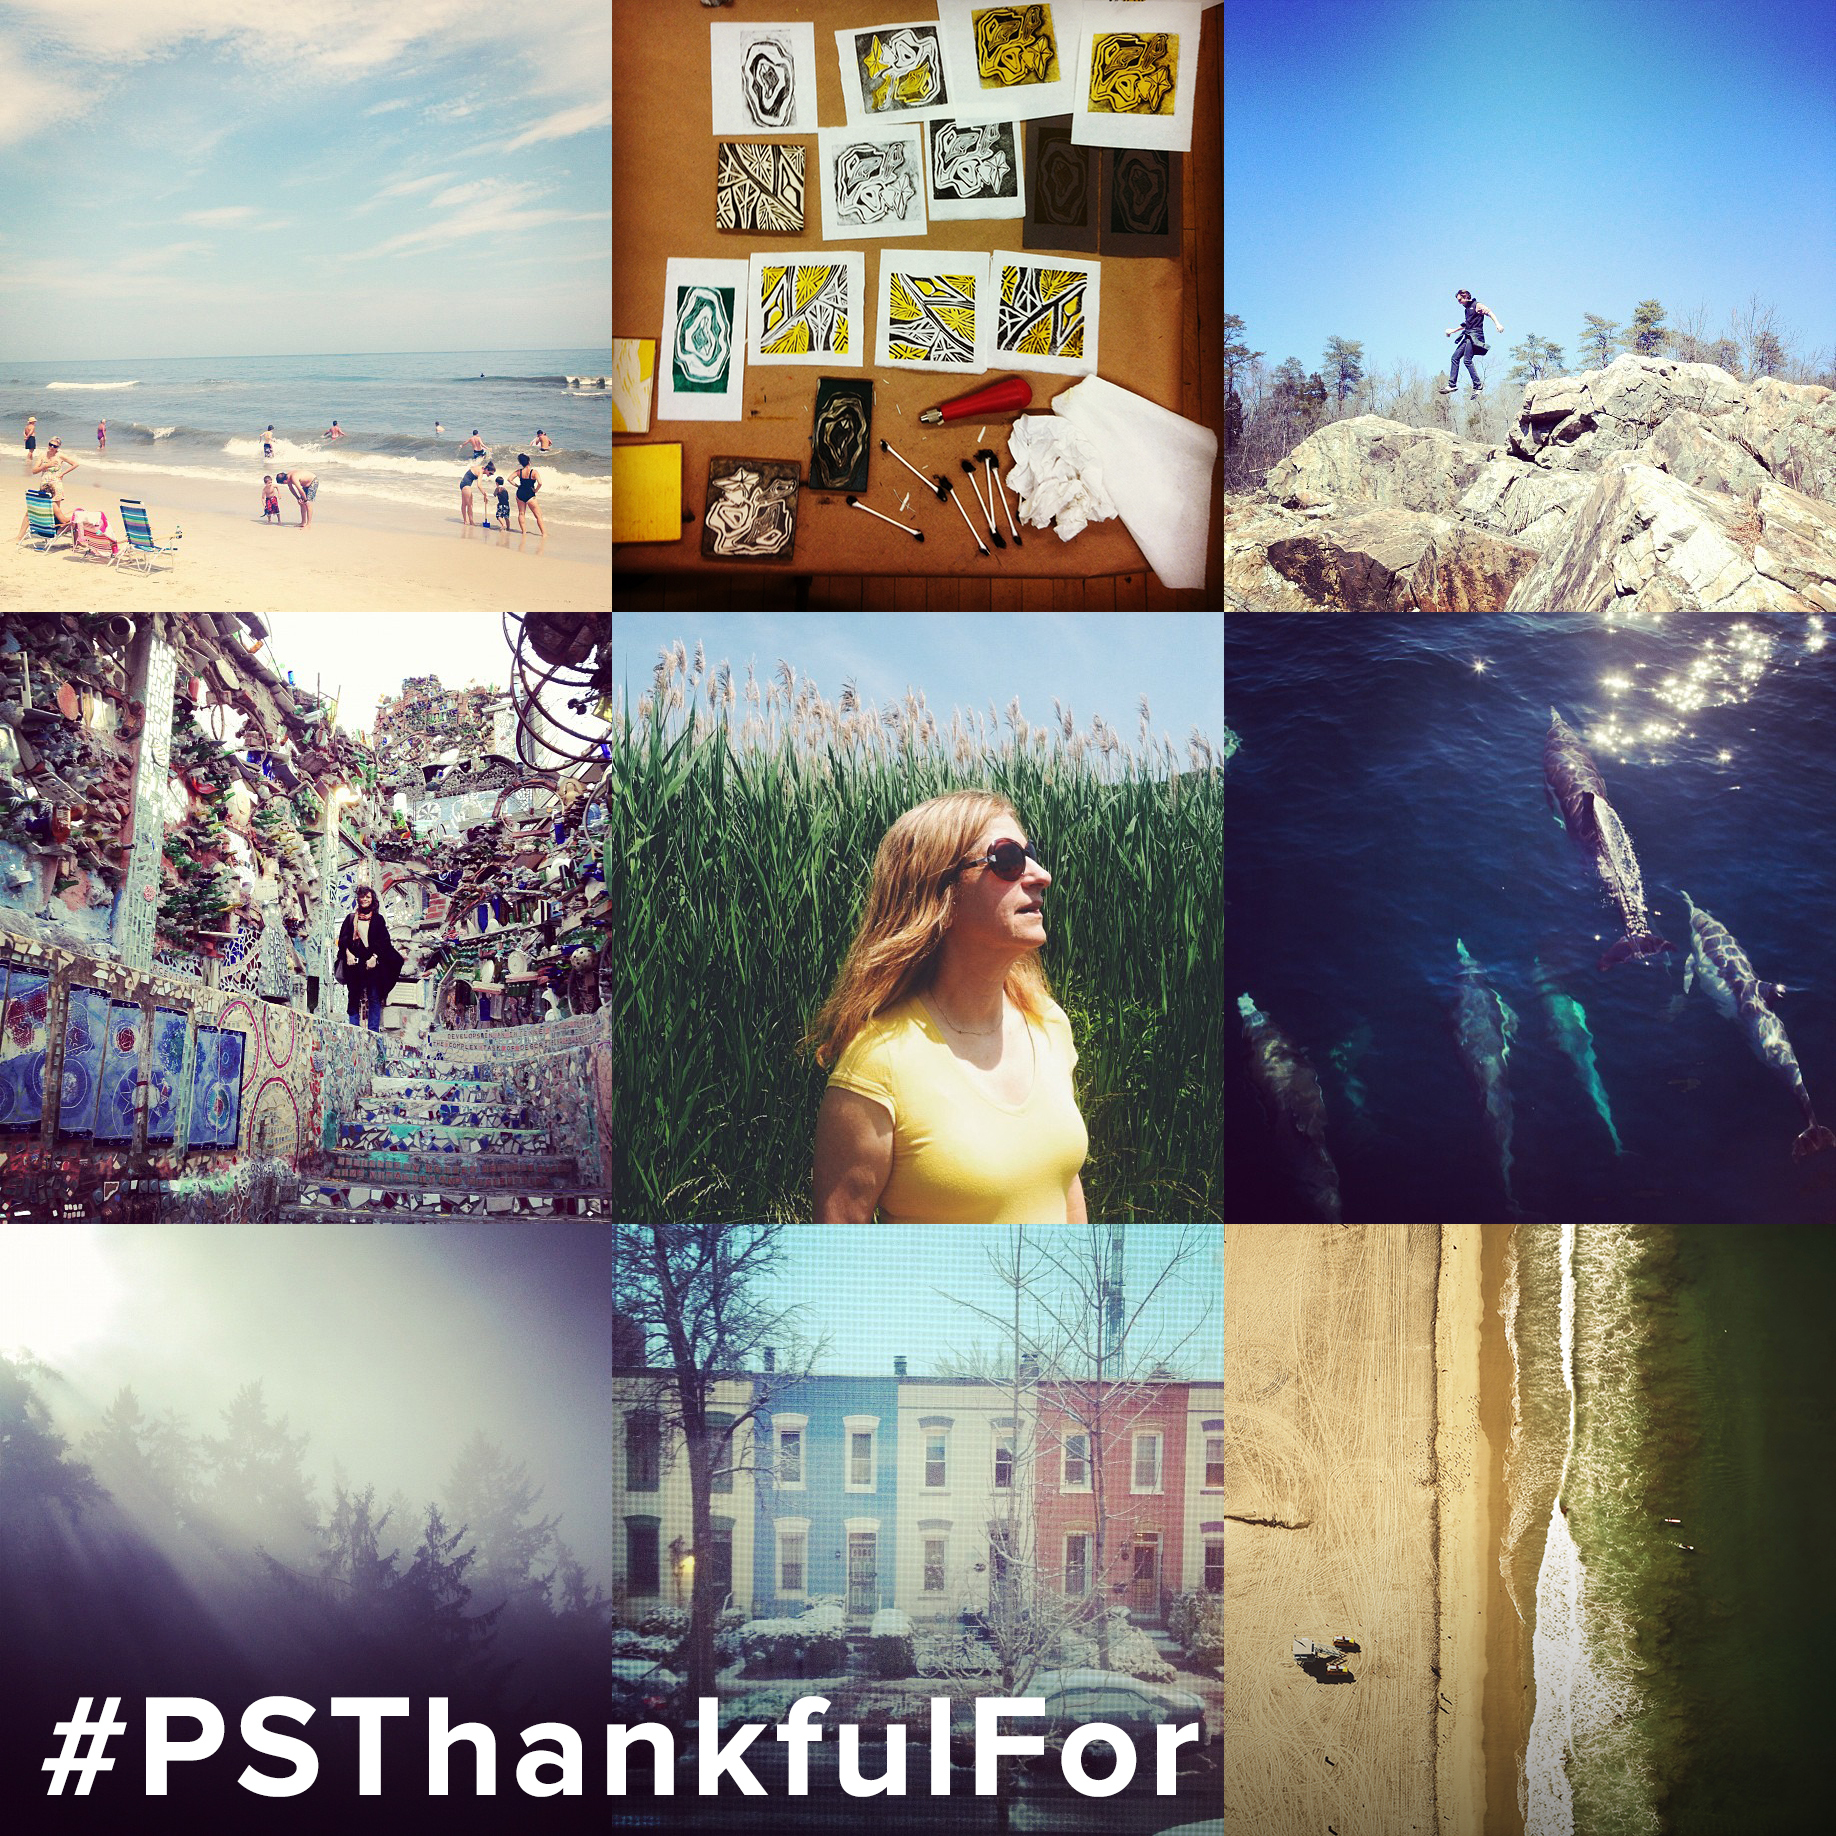 Show Us What You're Thankful For In The #PublicSquare